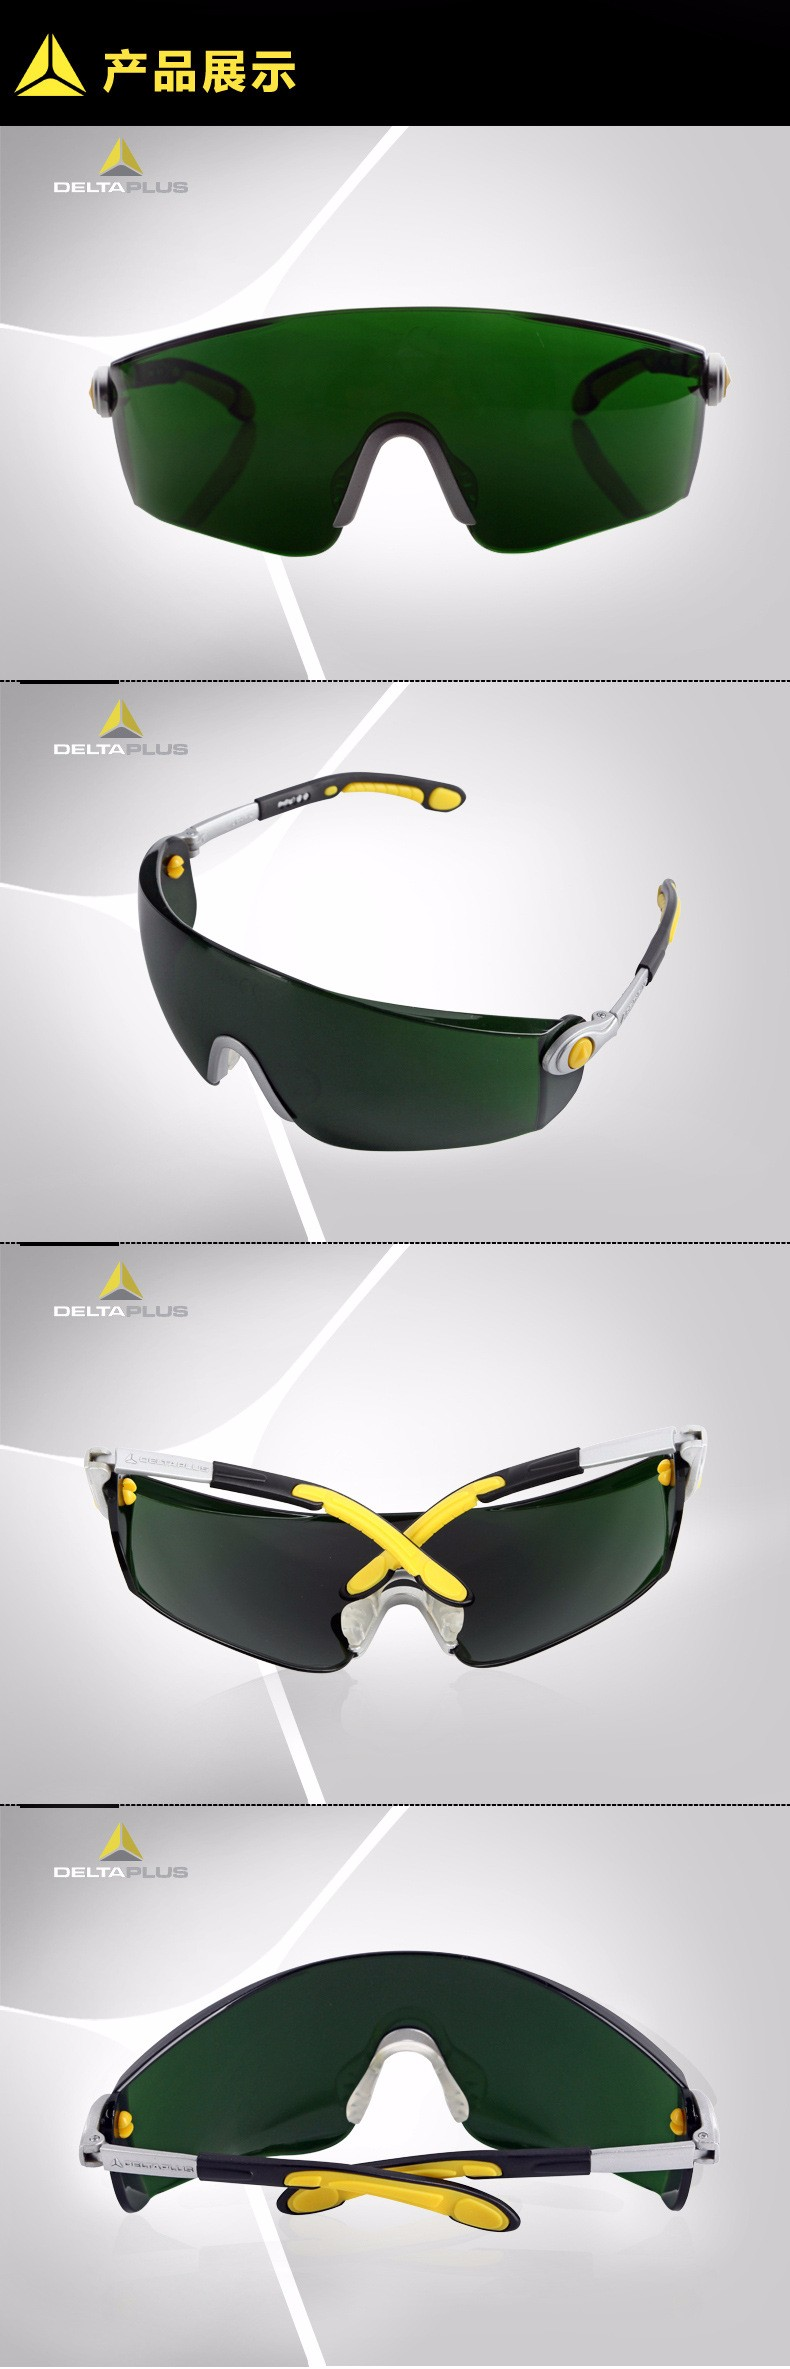 Deltaplus  welding safety goggles Anti UV welders Polycarbonate single lens glasses anti fog or mist Cycling glasses (3)